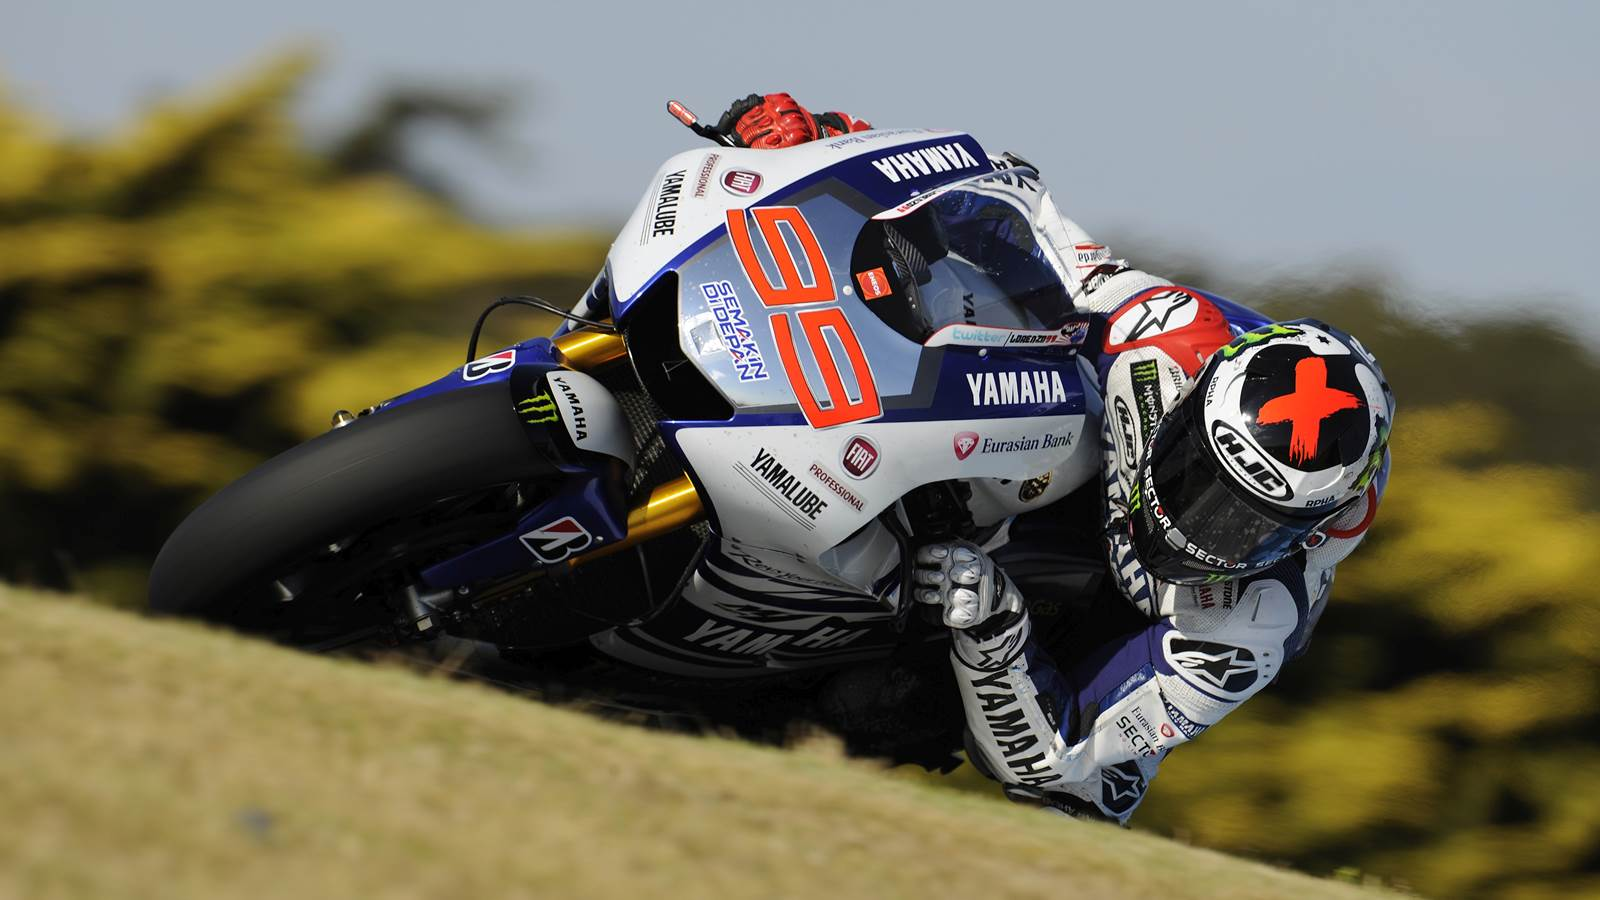 jorge lorenzo Bridgestone MotoGP tyre test at Phillip Island report